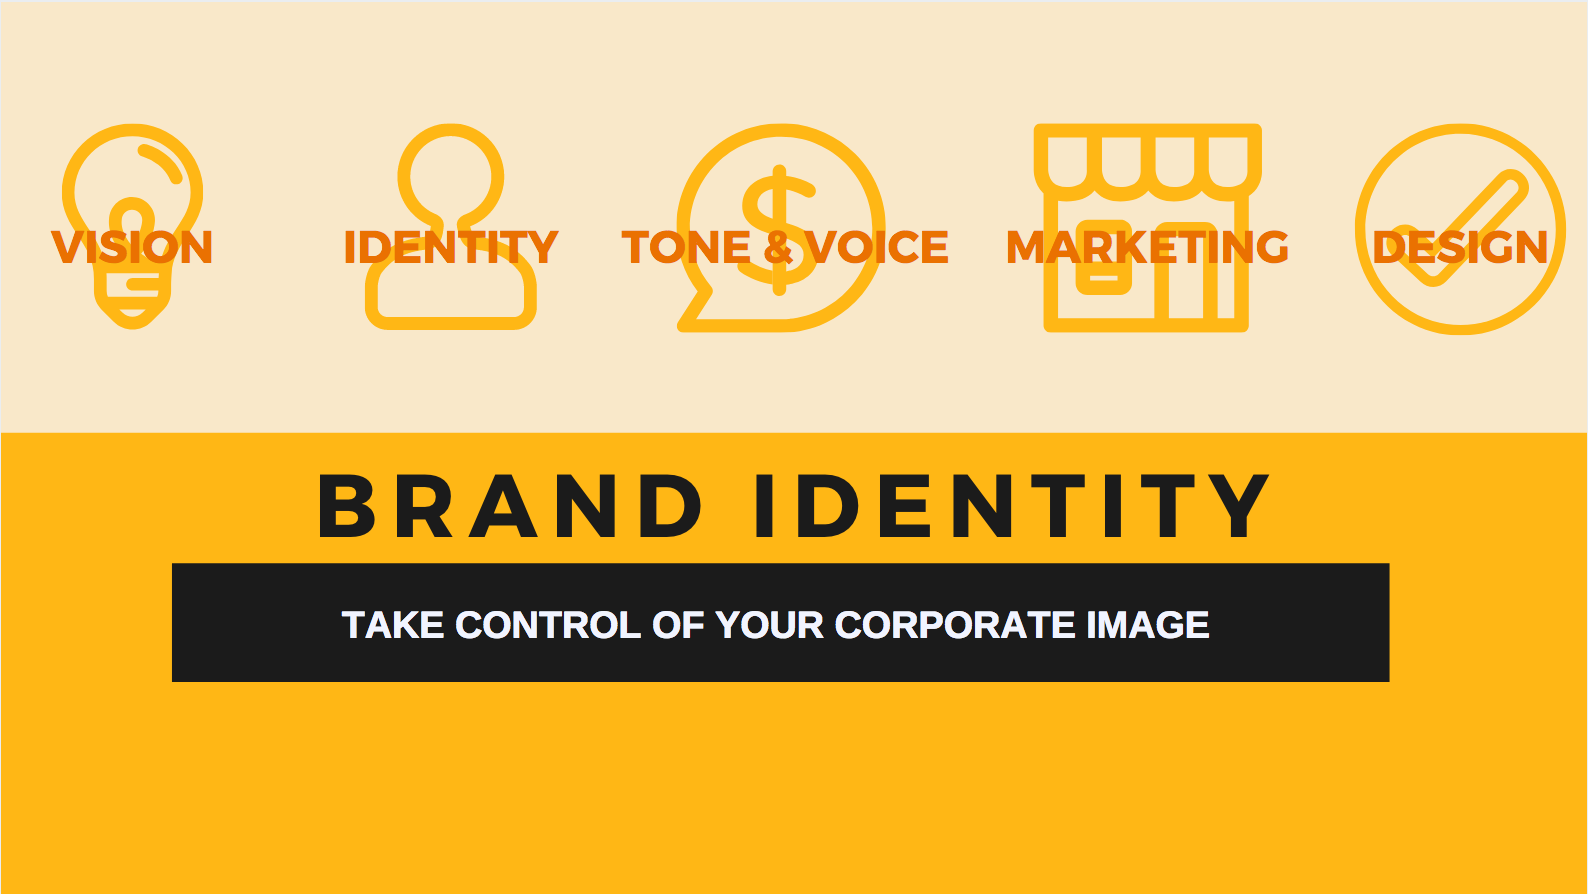 Online Branding Identification and Image: What Makes it so Important?